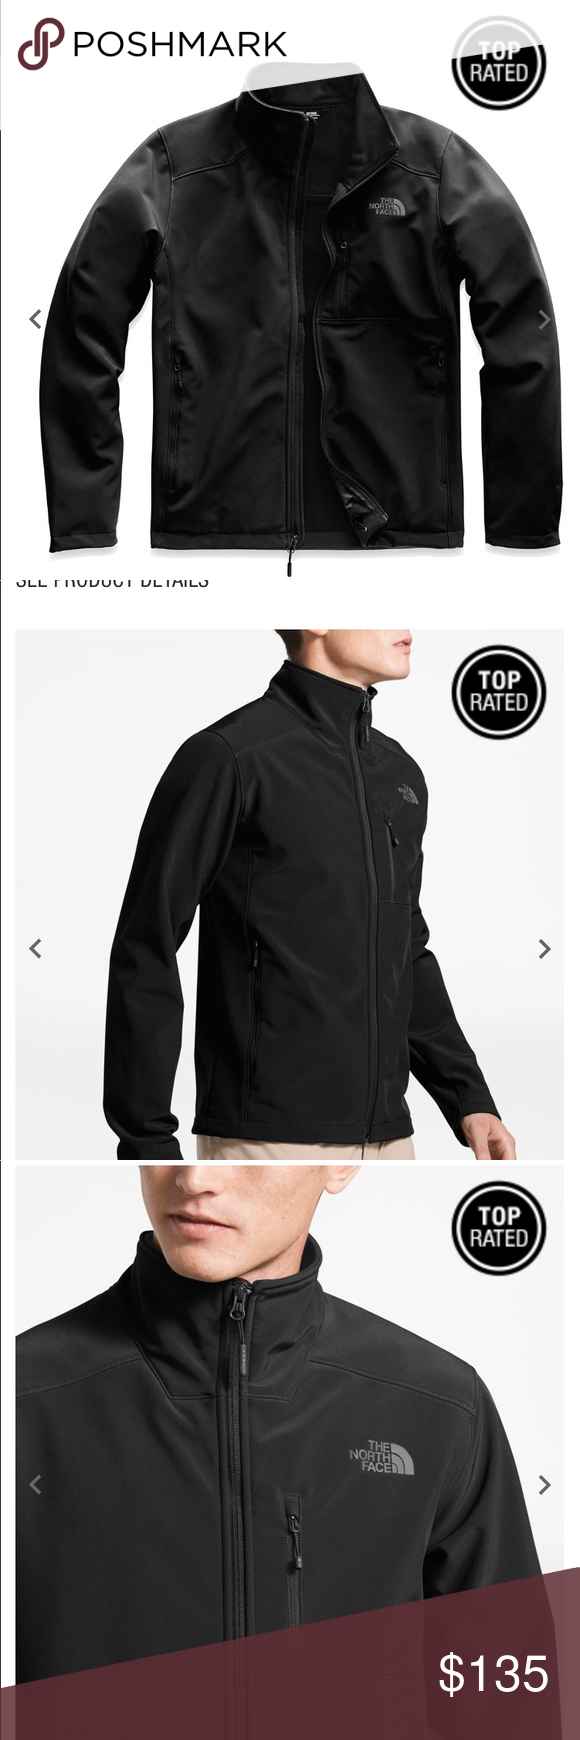 The North Face Apex Bionic Jacket Tall Clothes Design Fashion Design Fashion [ 1740 x 580 Pixel ]